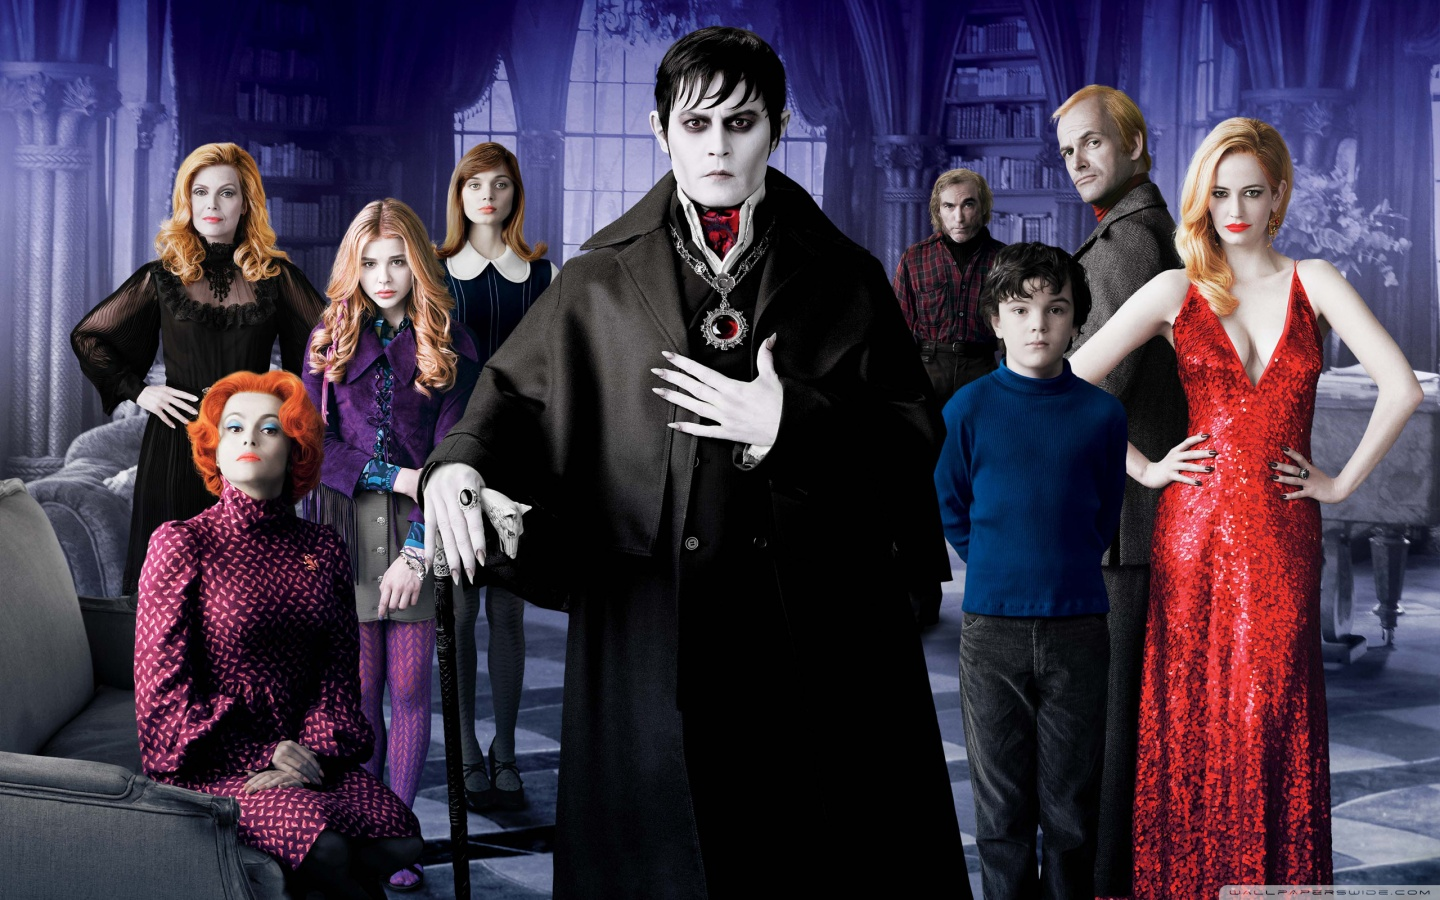 DARK SHADOWS Promo Images Make Me Smile 1440x900